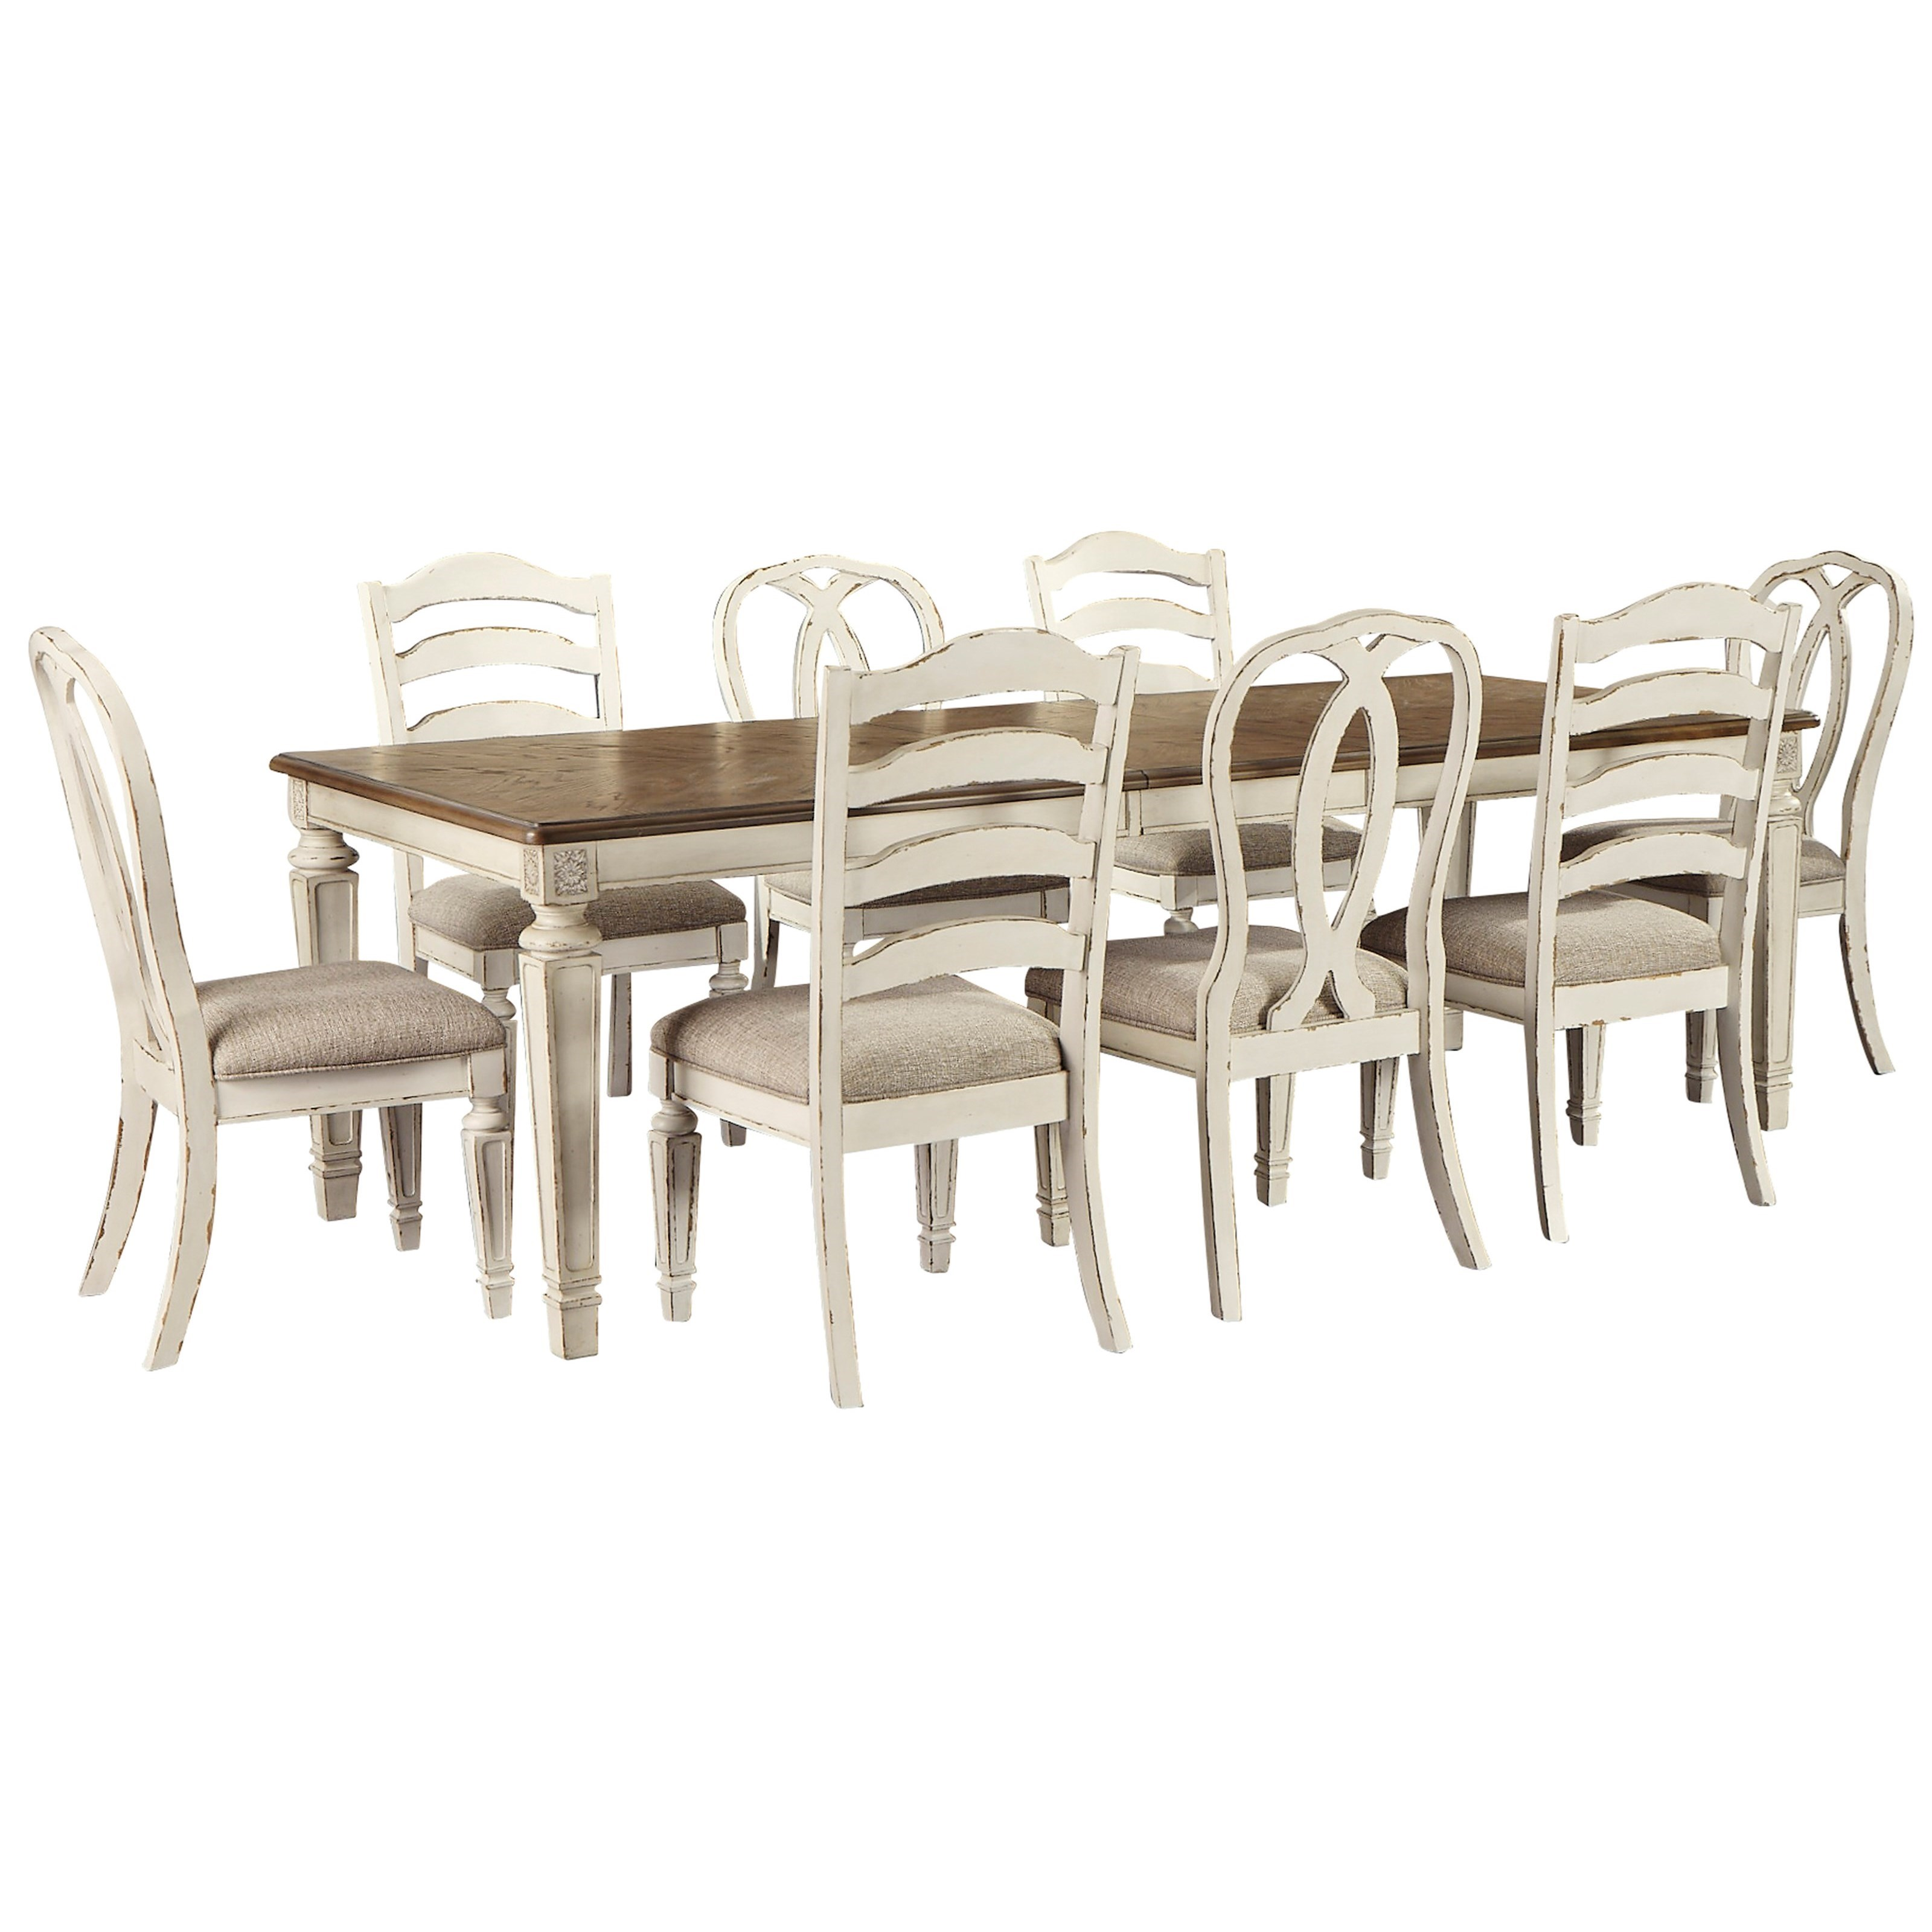 Realyn 9-Piece Table and Chair Set by Ashley (Signature Design) at Johnny Janosik